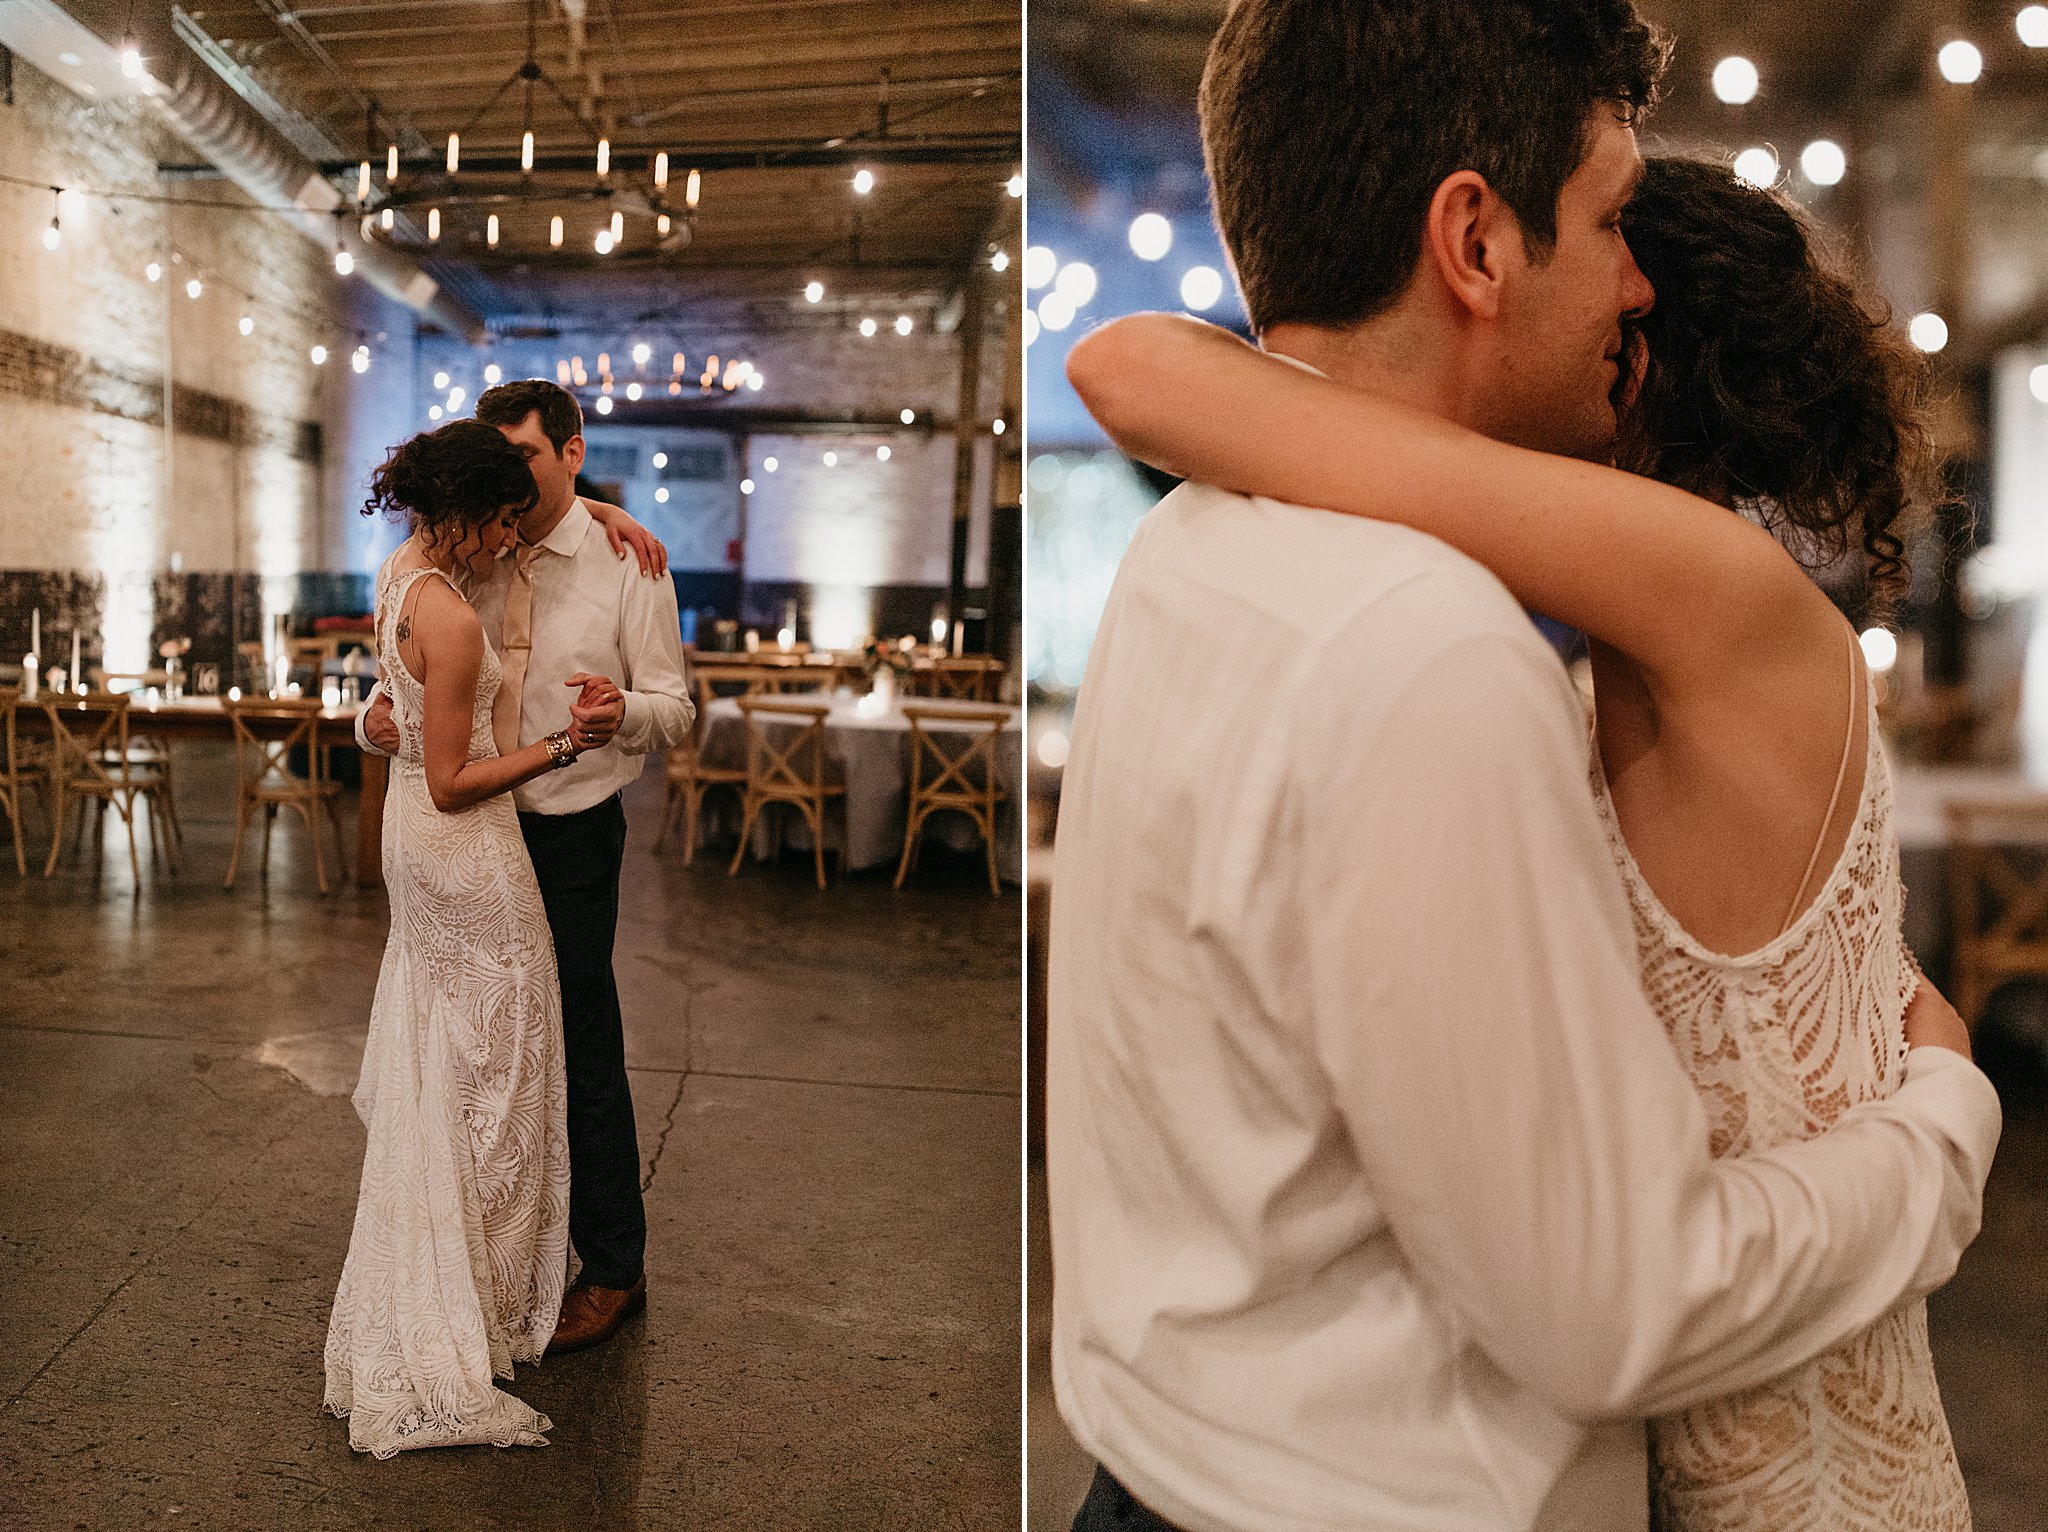 Wilderlove Co_Wedding Photographer_Industrial Wedding_Jewish Wedding_Dallas Texas Wedding_Brake & Clutch Warehouse_North Texas Photographer_0101.jpg